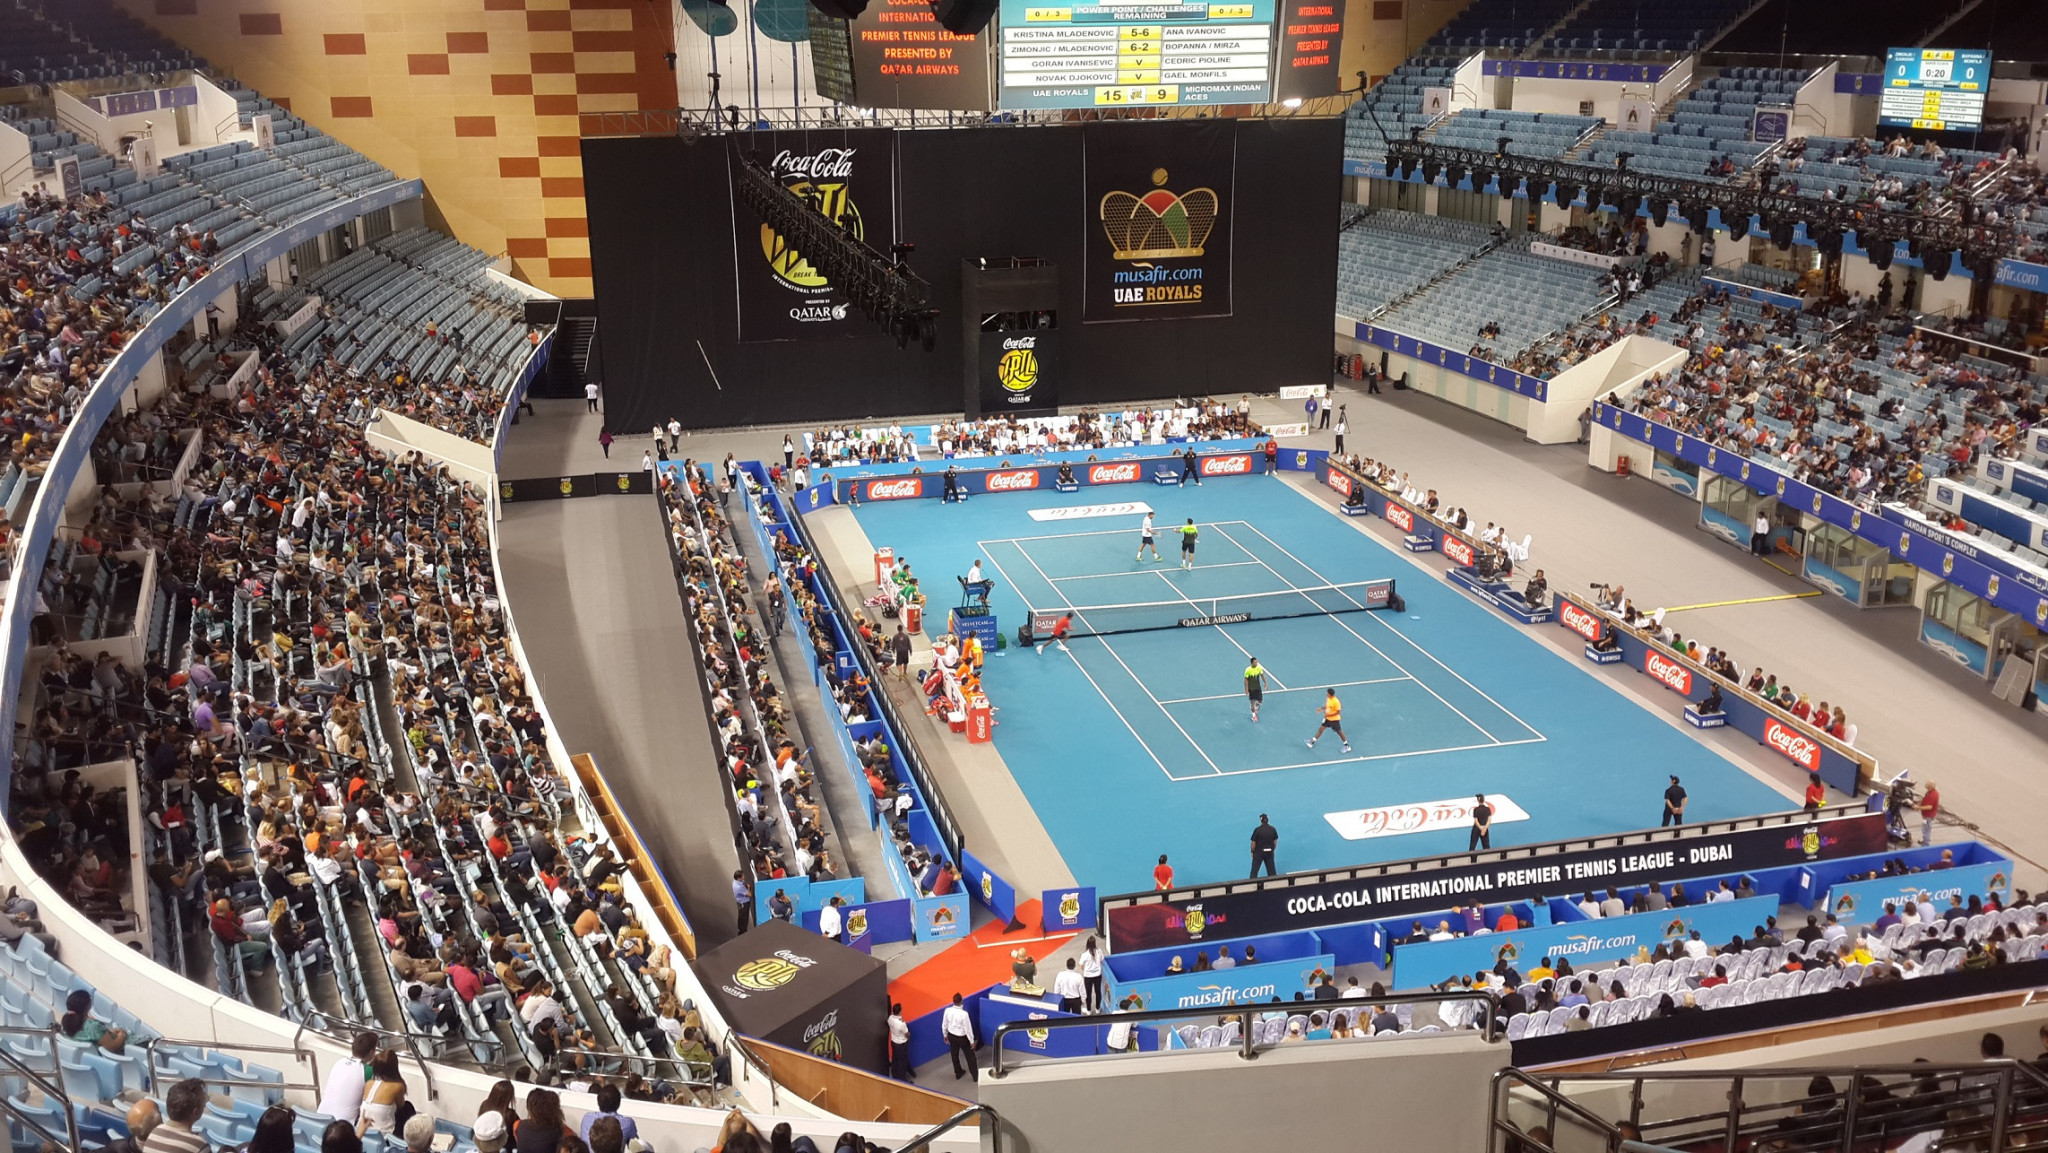 The Hamdan Sports Complex has been offered for Tokyo 2020 training camps ©DSC